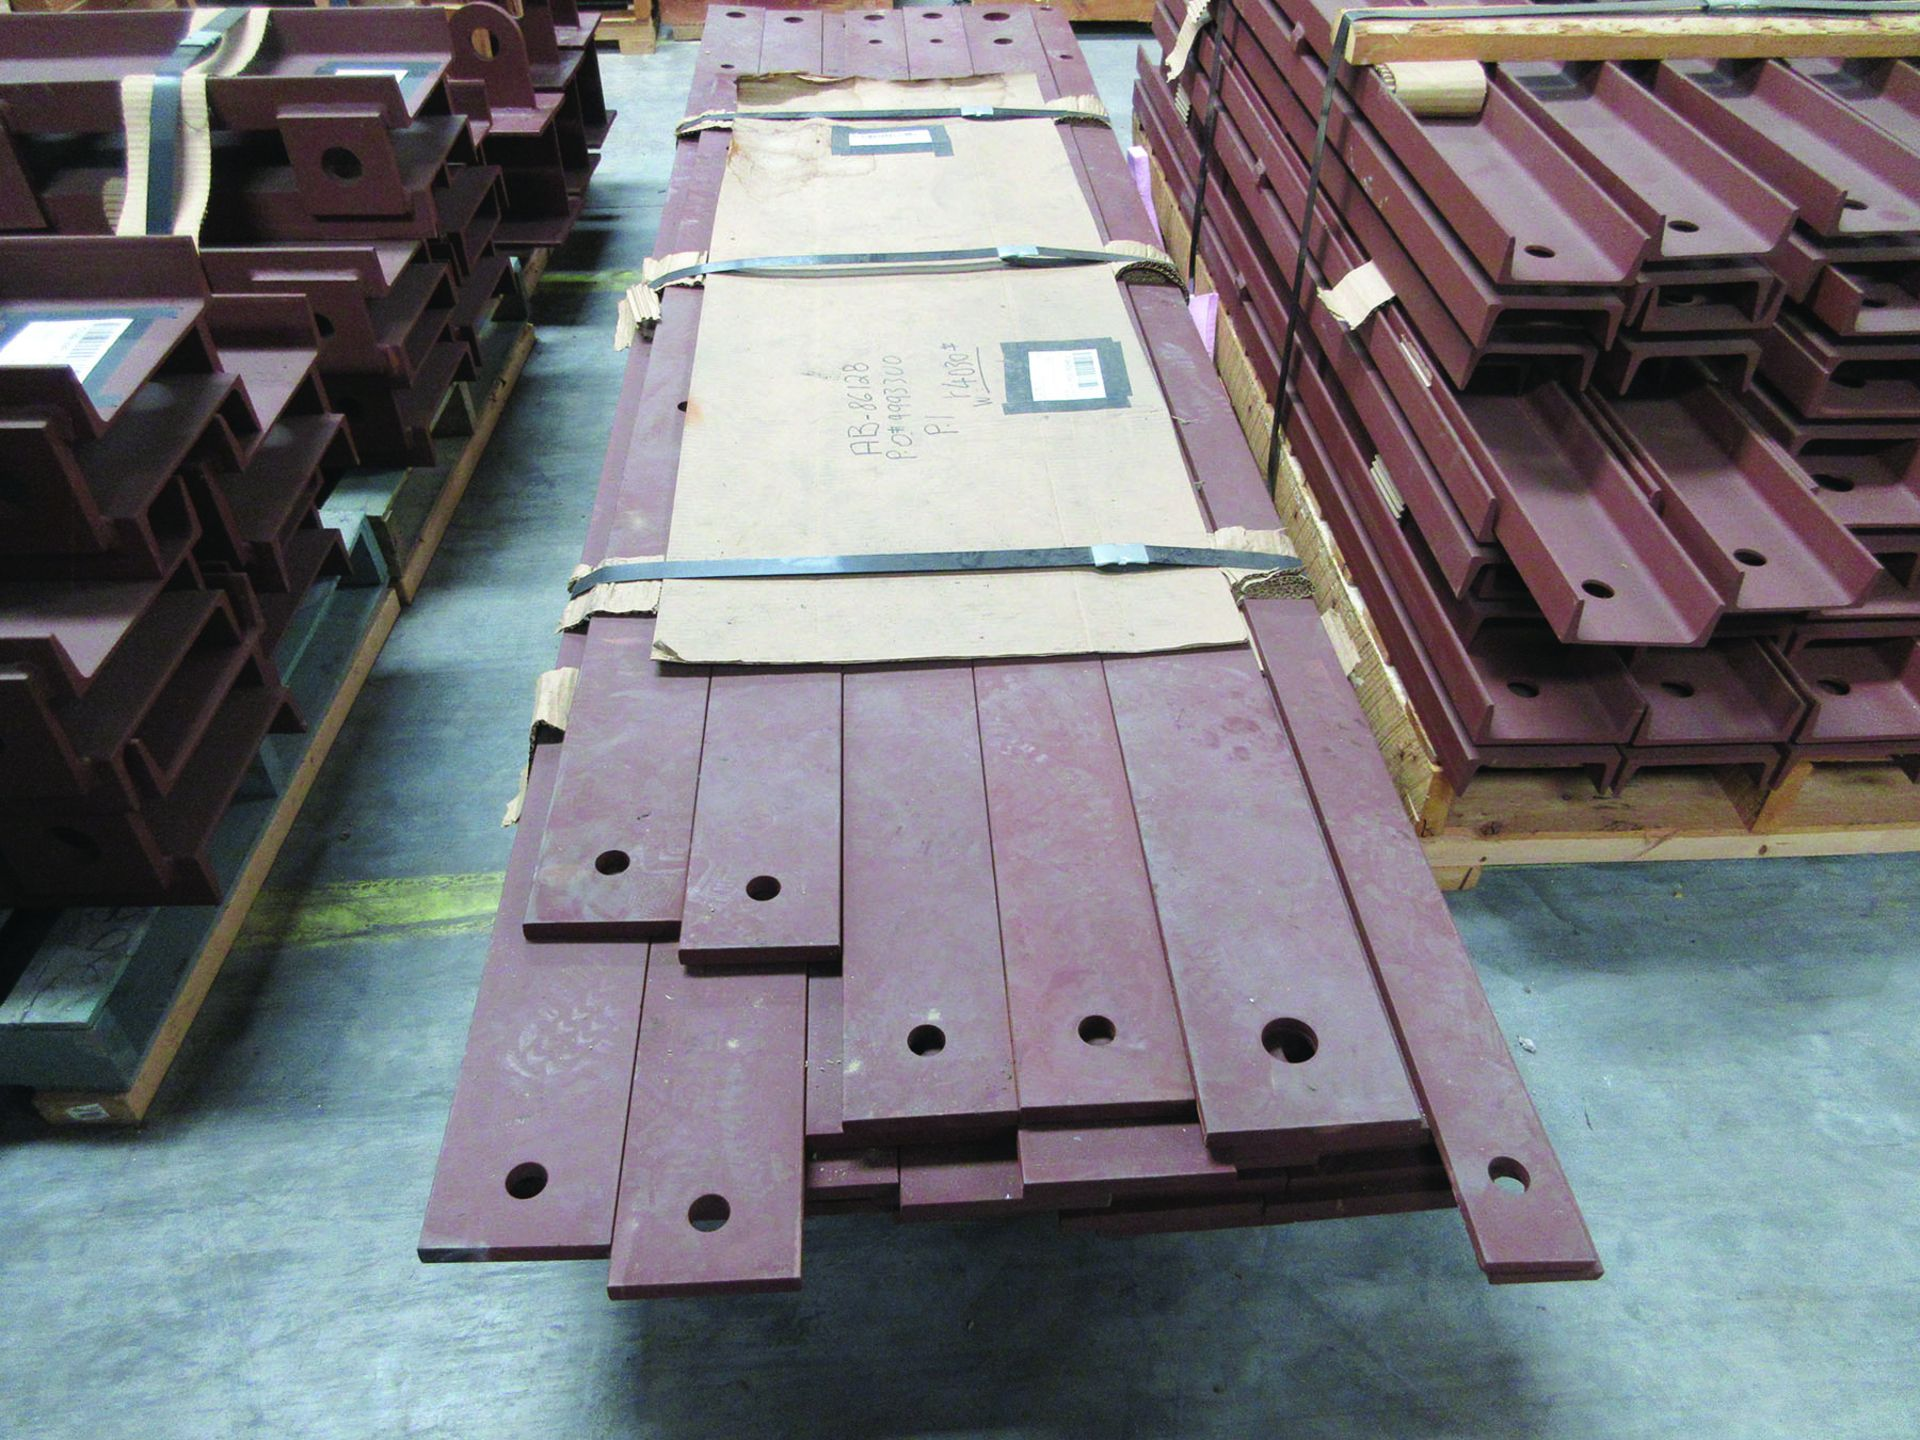 SUPPORT RODS, STEEL CHANNEL, (3) GATES, ASSORTED DAMPERS, LARGEST WEIGHING 16,250 LB., 175'' X 142'' - Image 10 of 12